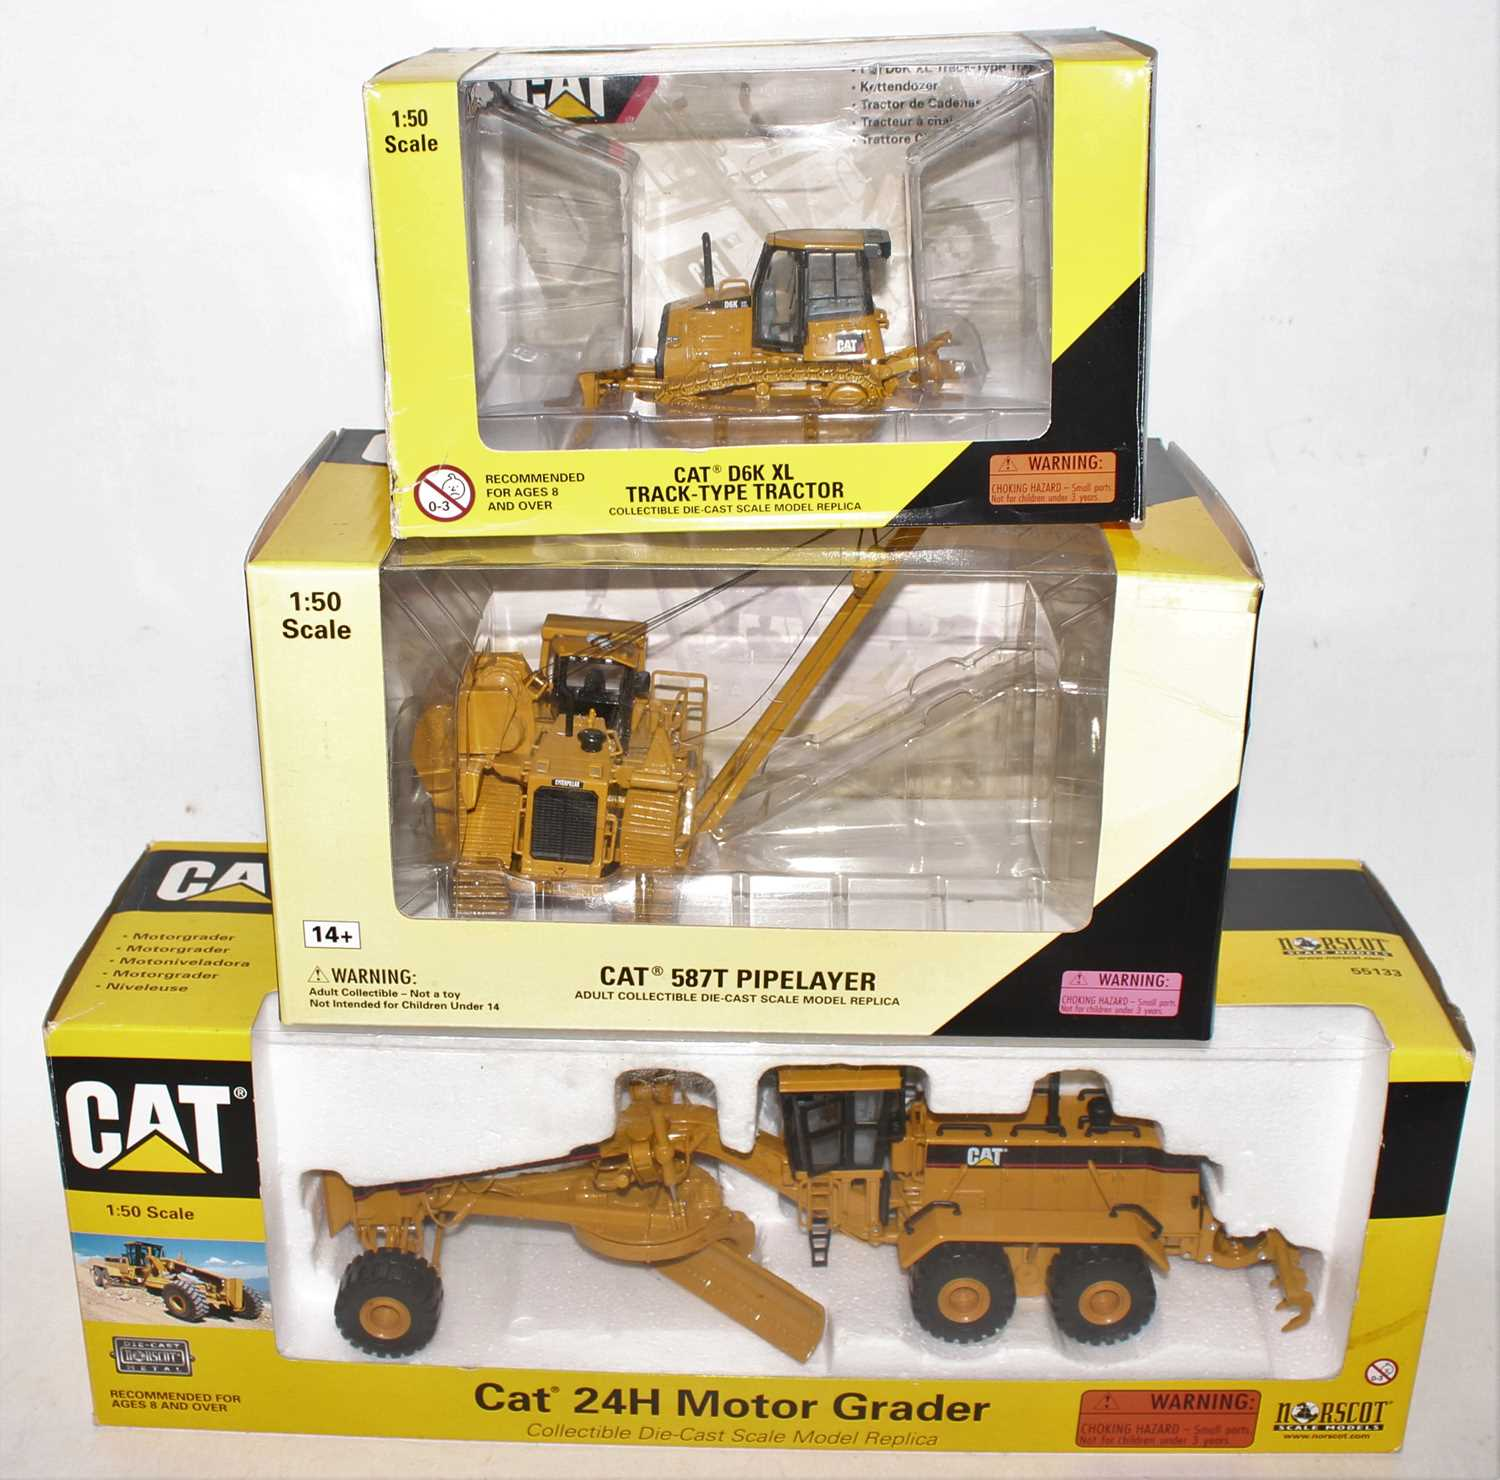 A Norscot 1/50 scale Caterpillar boxed diecast group, three examples to include a Caterpillar D6K XL